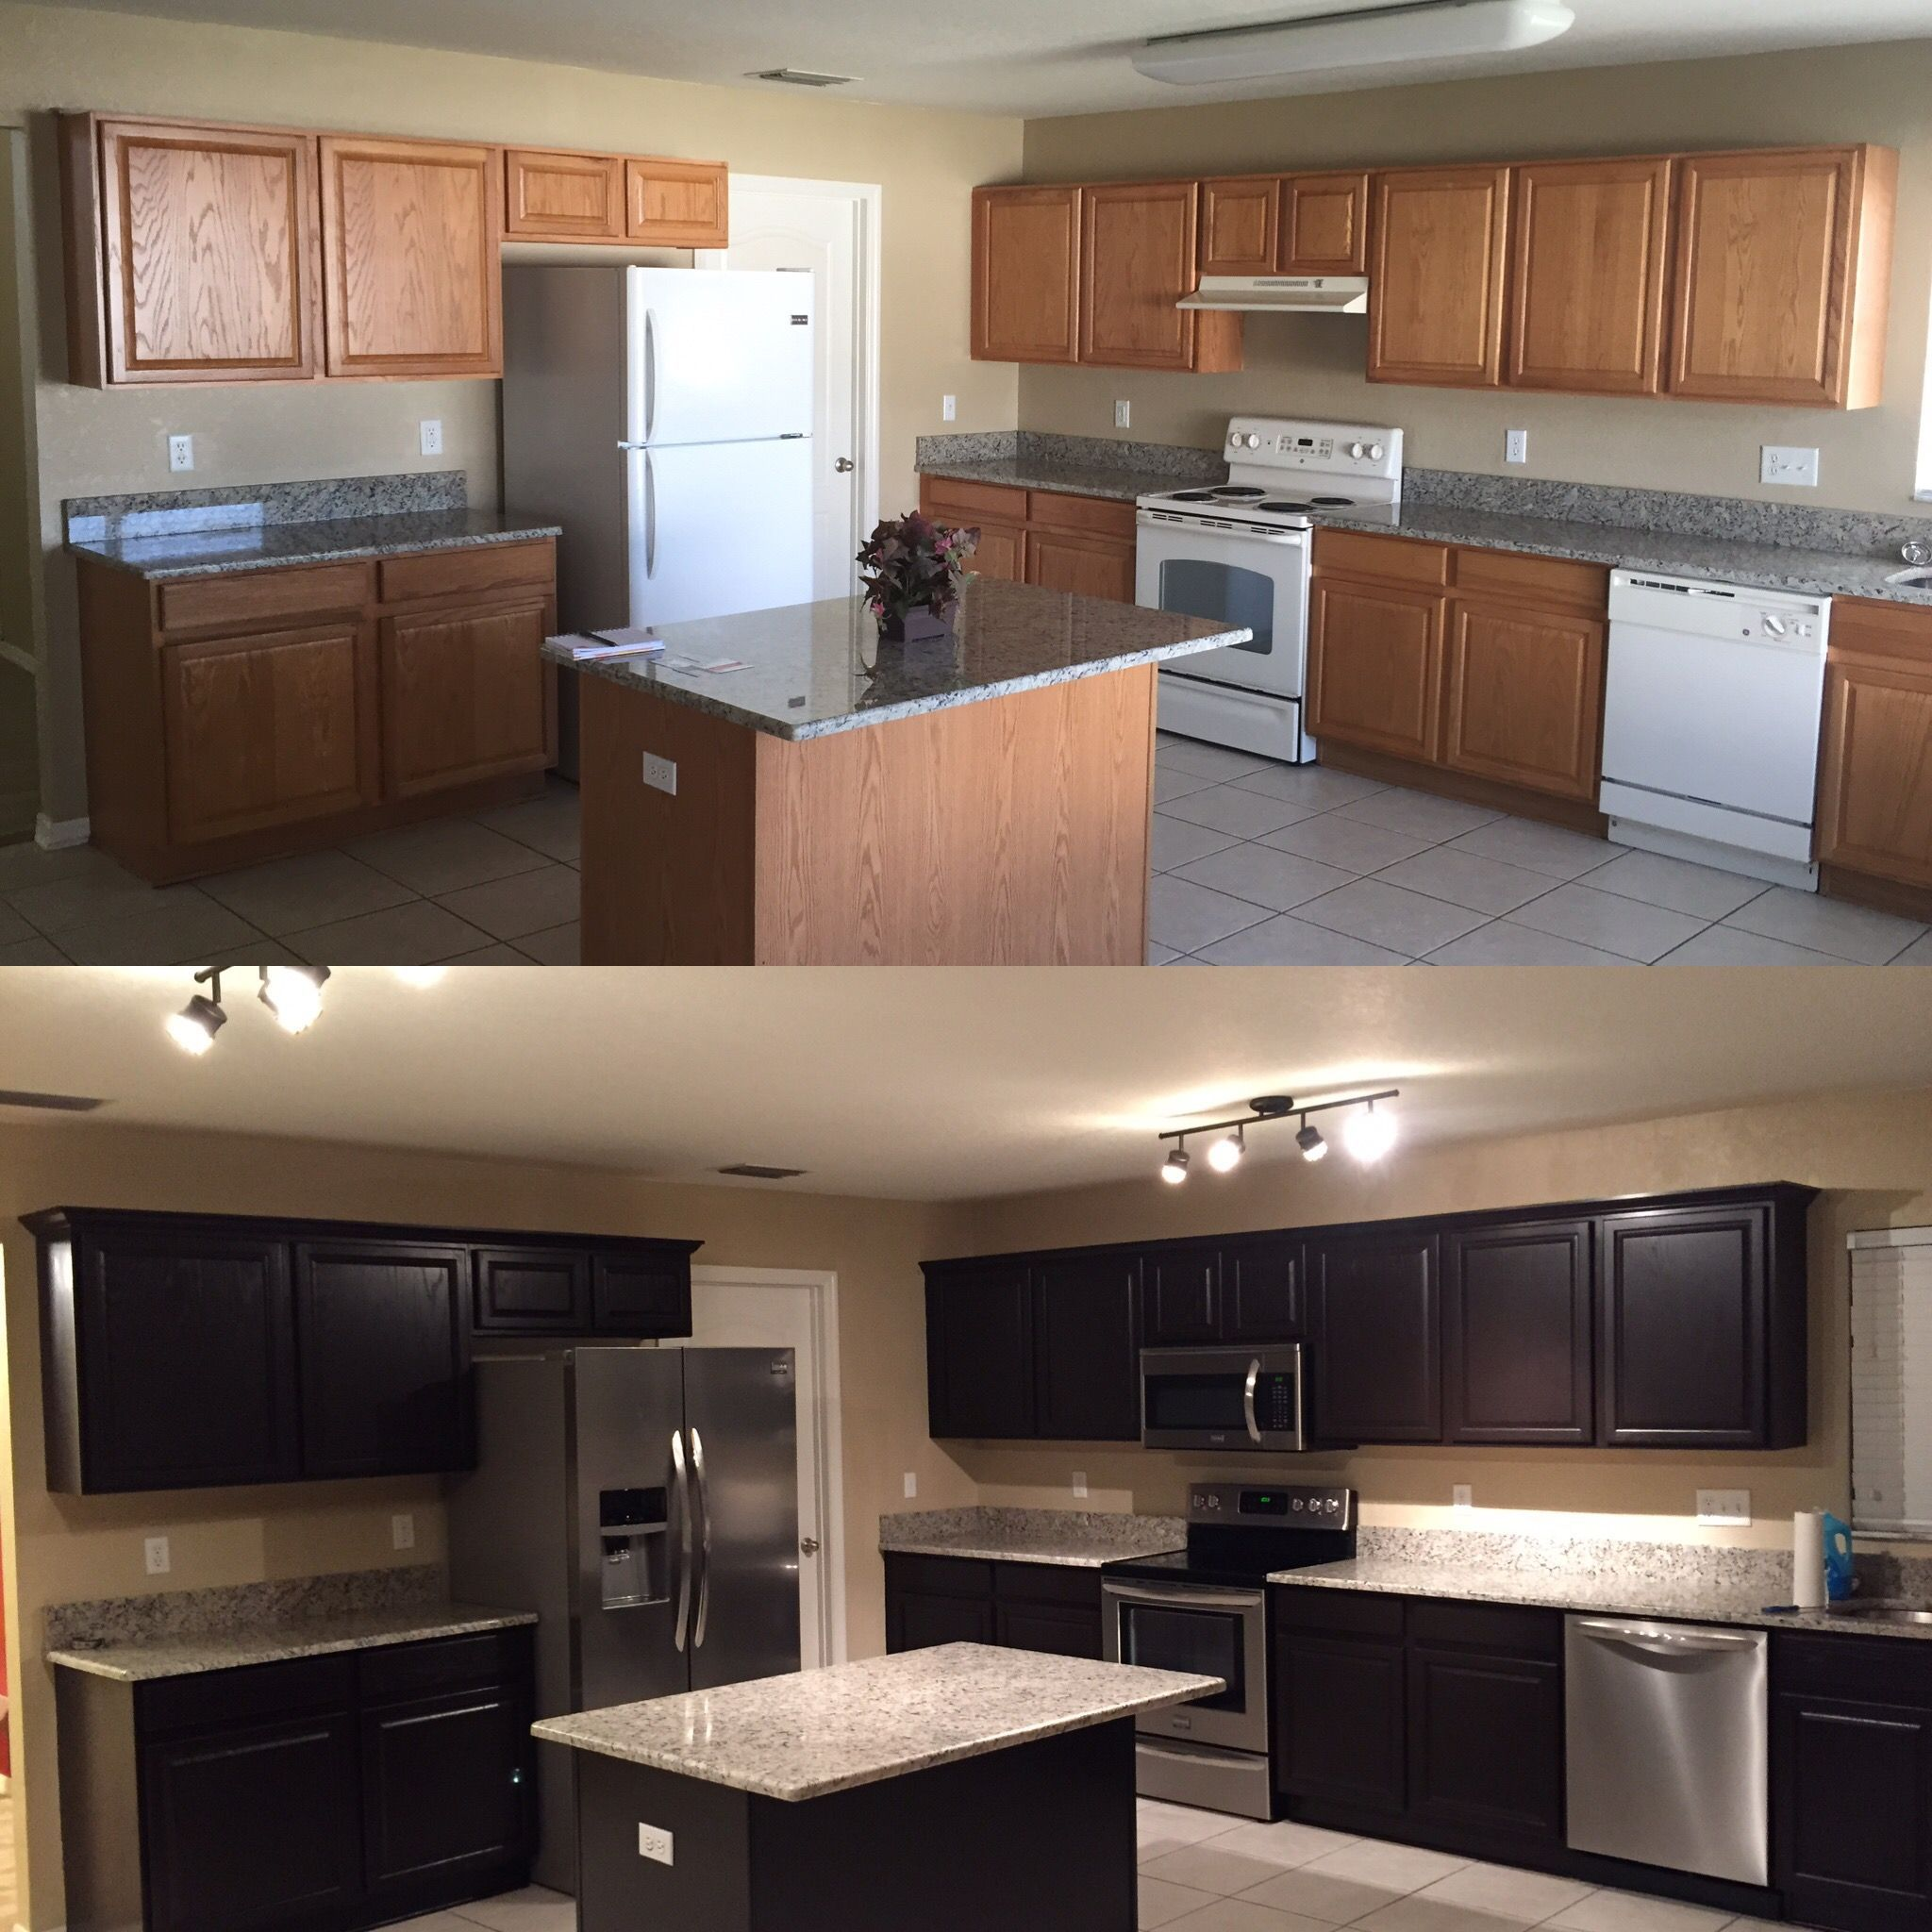 Kitchen Cabinet Makeovers On A Budget: My DIY Kitchen Remodel On The Cheap.. In 2020